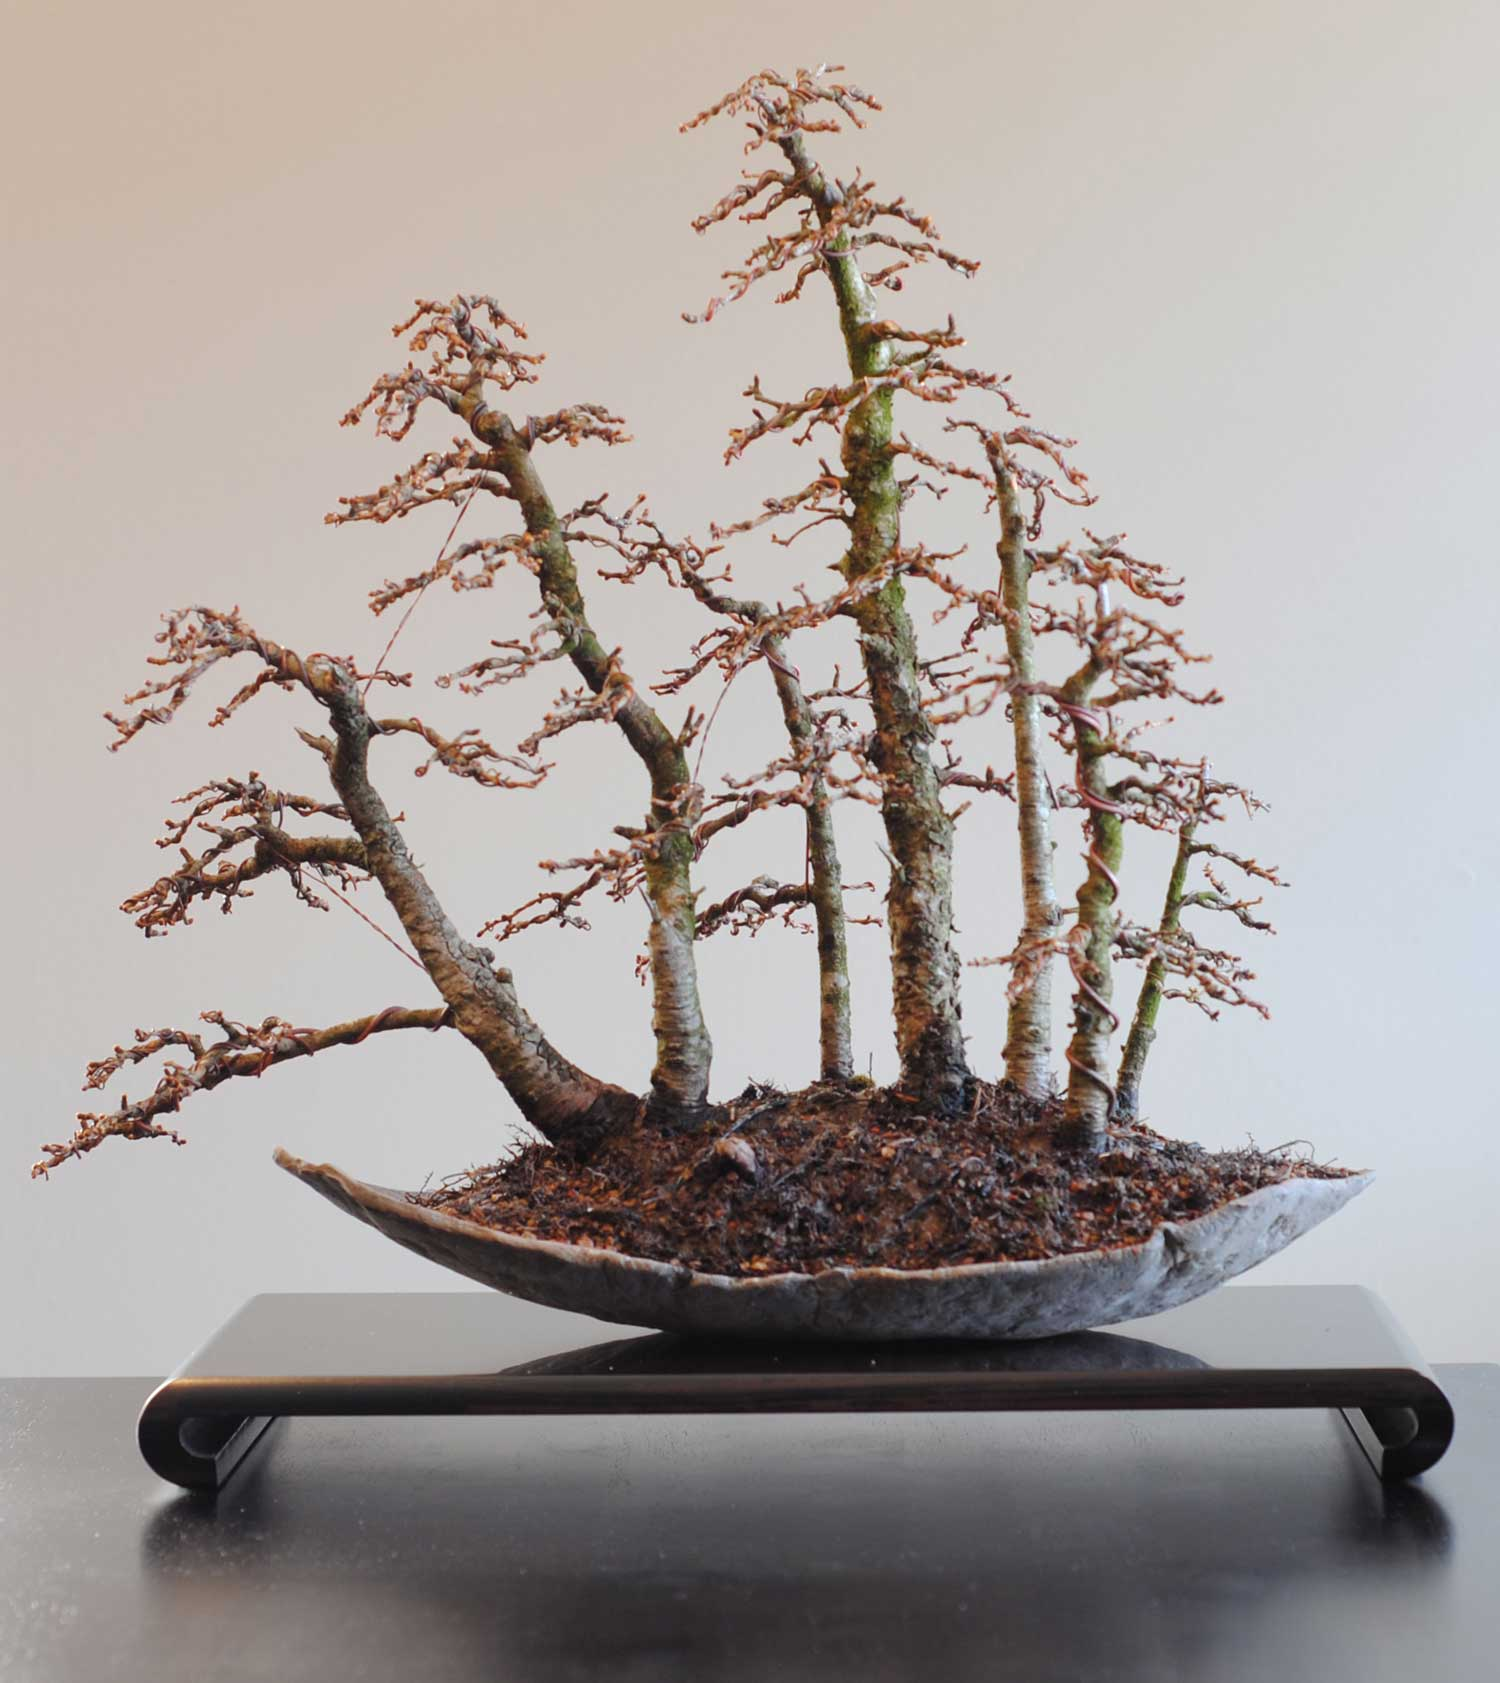 Wiring Larch Bonsai Guide And Troubleshooting Of Diagram Pioneer Deh P3500 Group Picture Image By Tag Lakeshore In Toronto Canada Rh Lakeshorebonsai Com Oak Birch